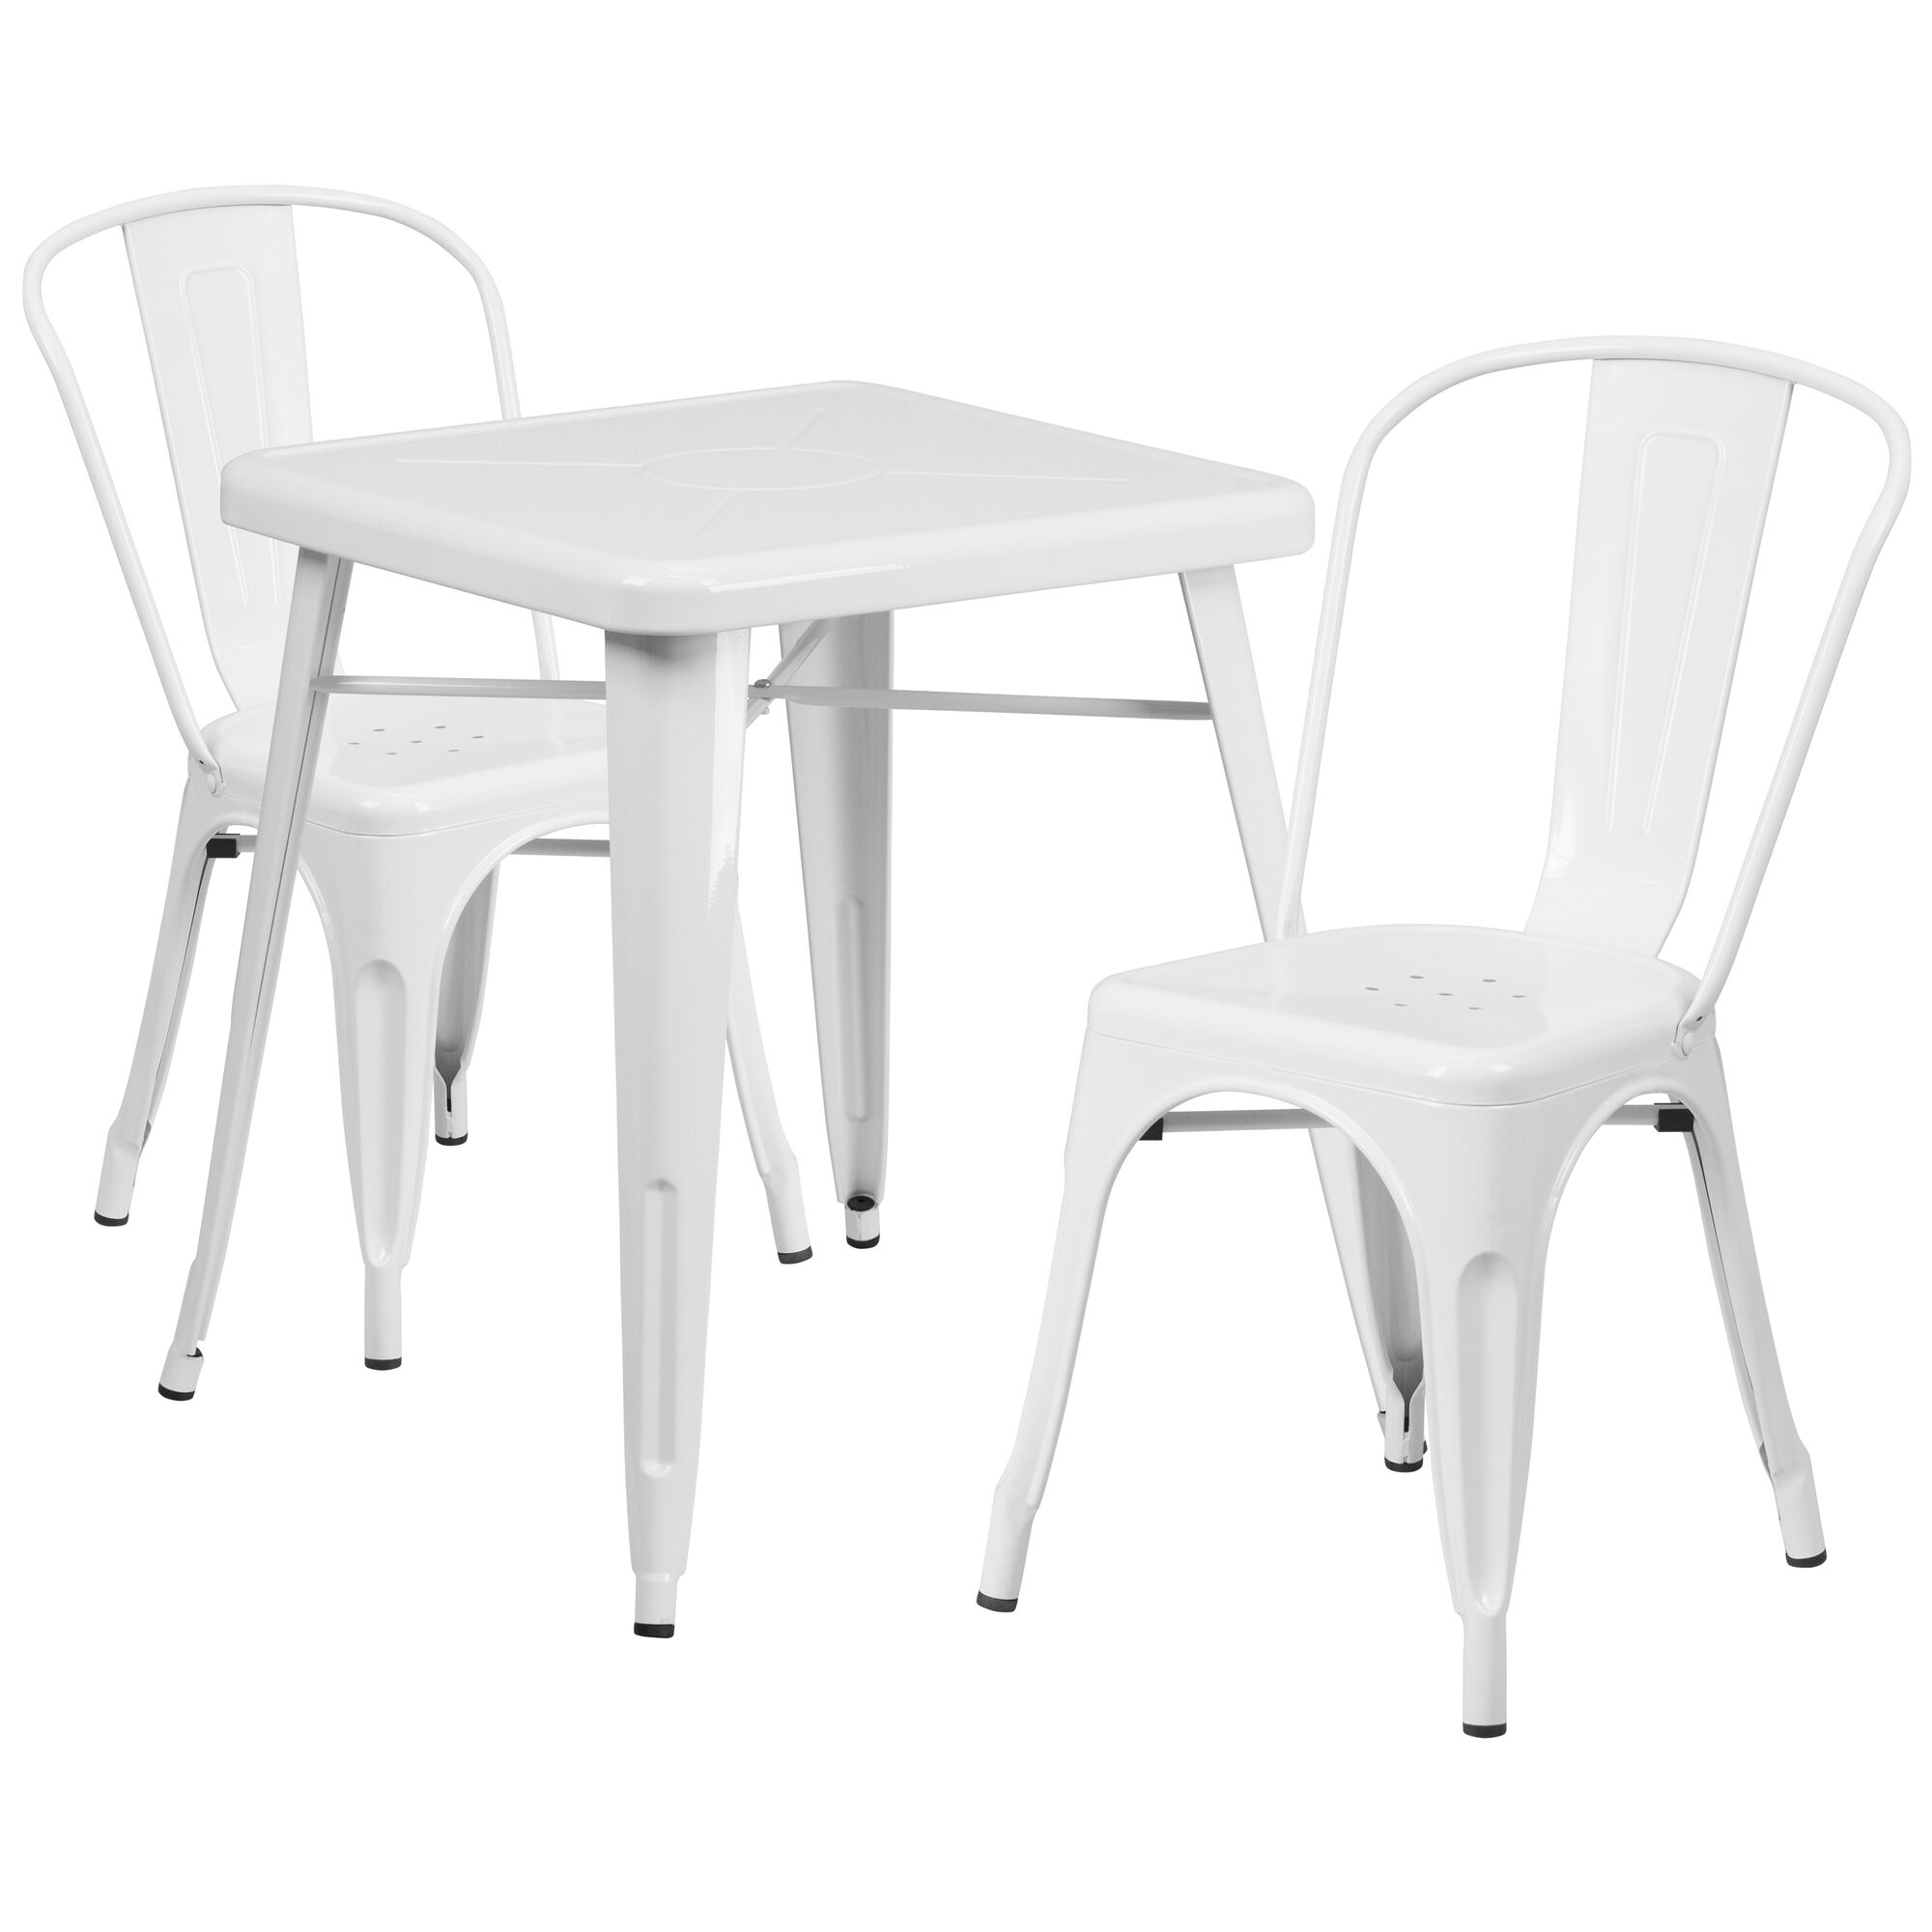 Commercial Grade 23 75 Square White Metal Indoor Outdoor Table Set With 2 Stack Chairs